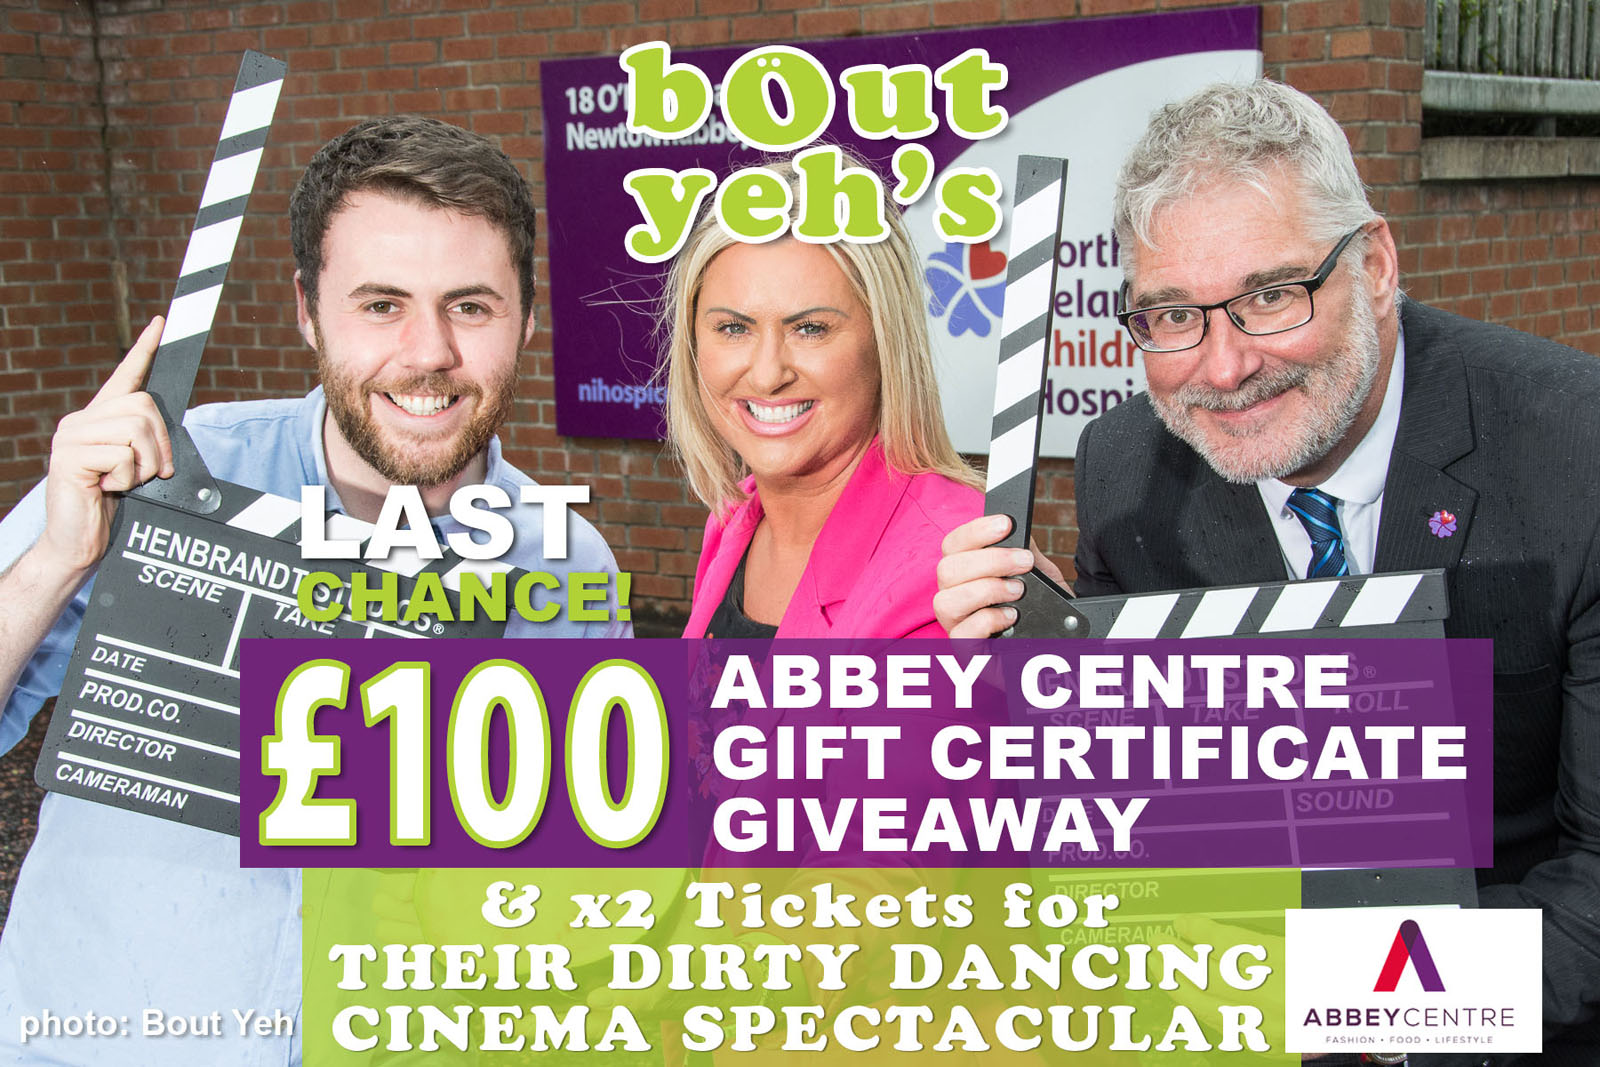 Social Media Marketing Consultants Belfast - Abbey Centre campaign photo 1857. Photo by Bout Yeh used in a Social Media Marketing campaign across Bout Yeh's Social Media platforms for Abbey Centre Northern Ireland.